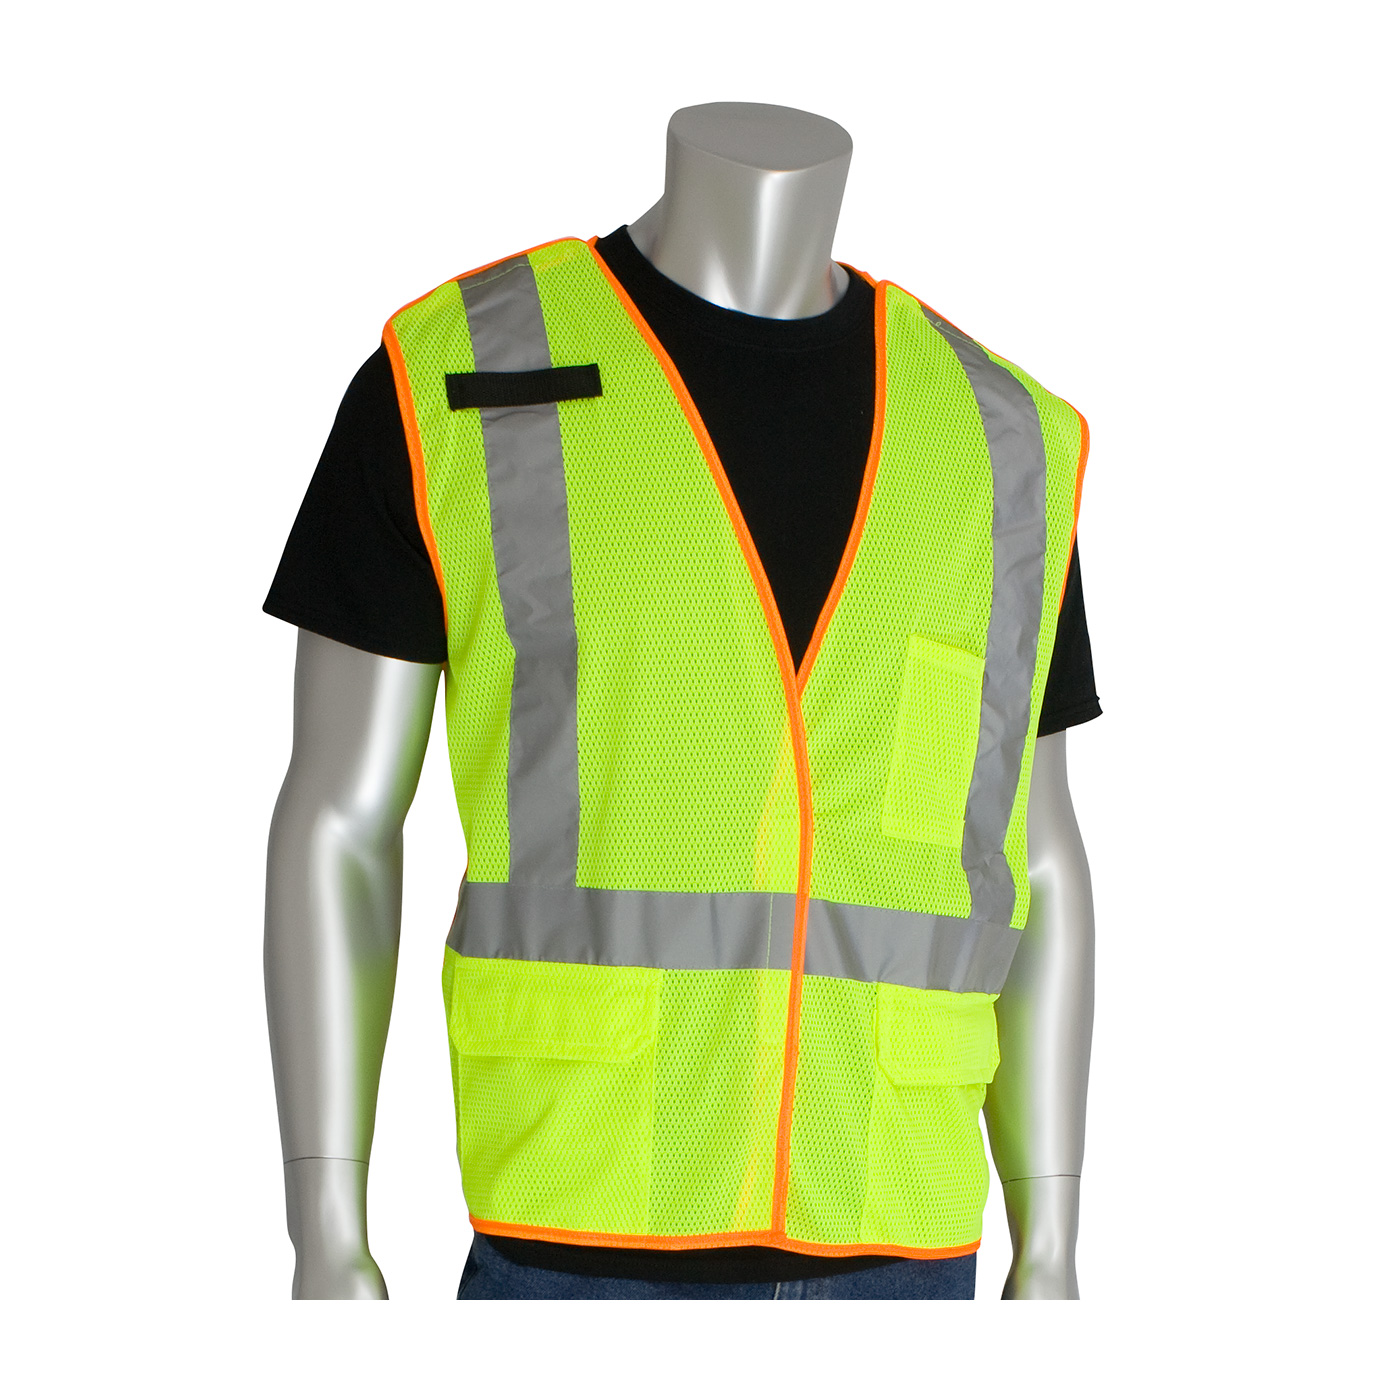 PIP® ANSI Type R Class 2 and CAN/CSA Z96 X-Back Breakaway Mesh Vest #302-0210-LY